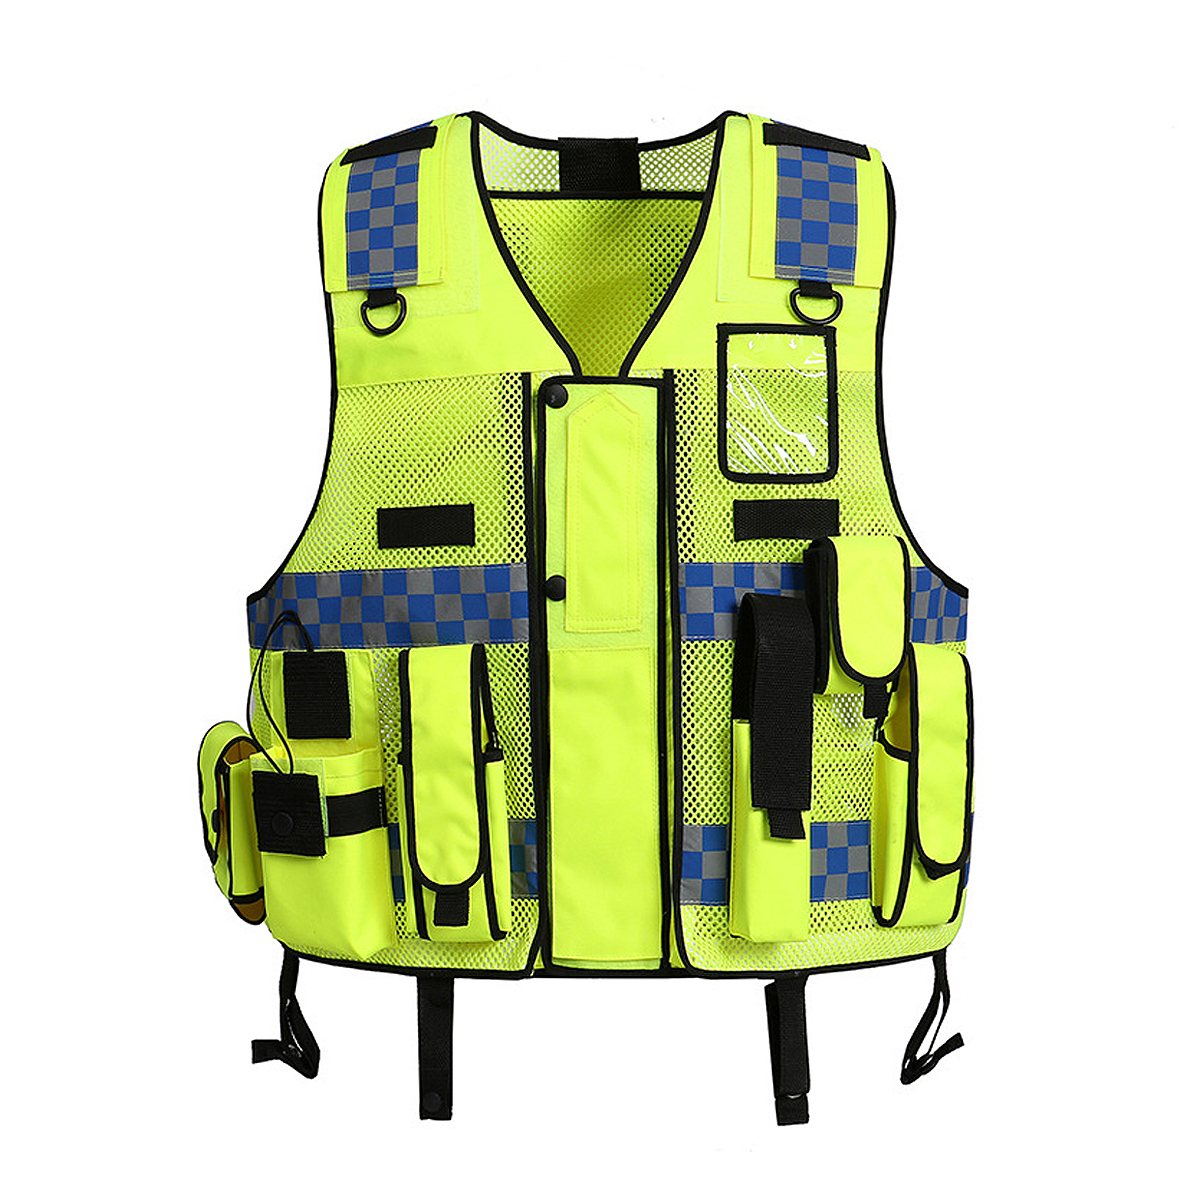 Customize Logo Reflective Safety Vest Security Patrol Vest Workwear Traffic Safety Clothing Night Reflective Pockets Vert